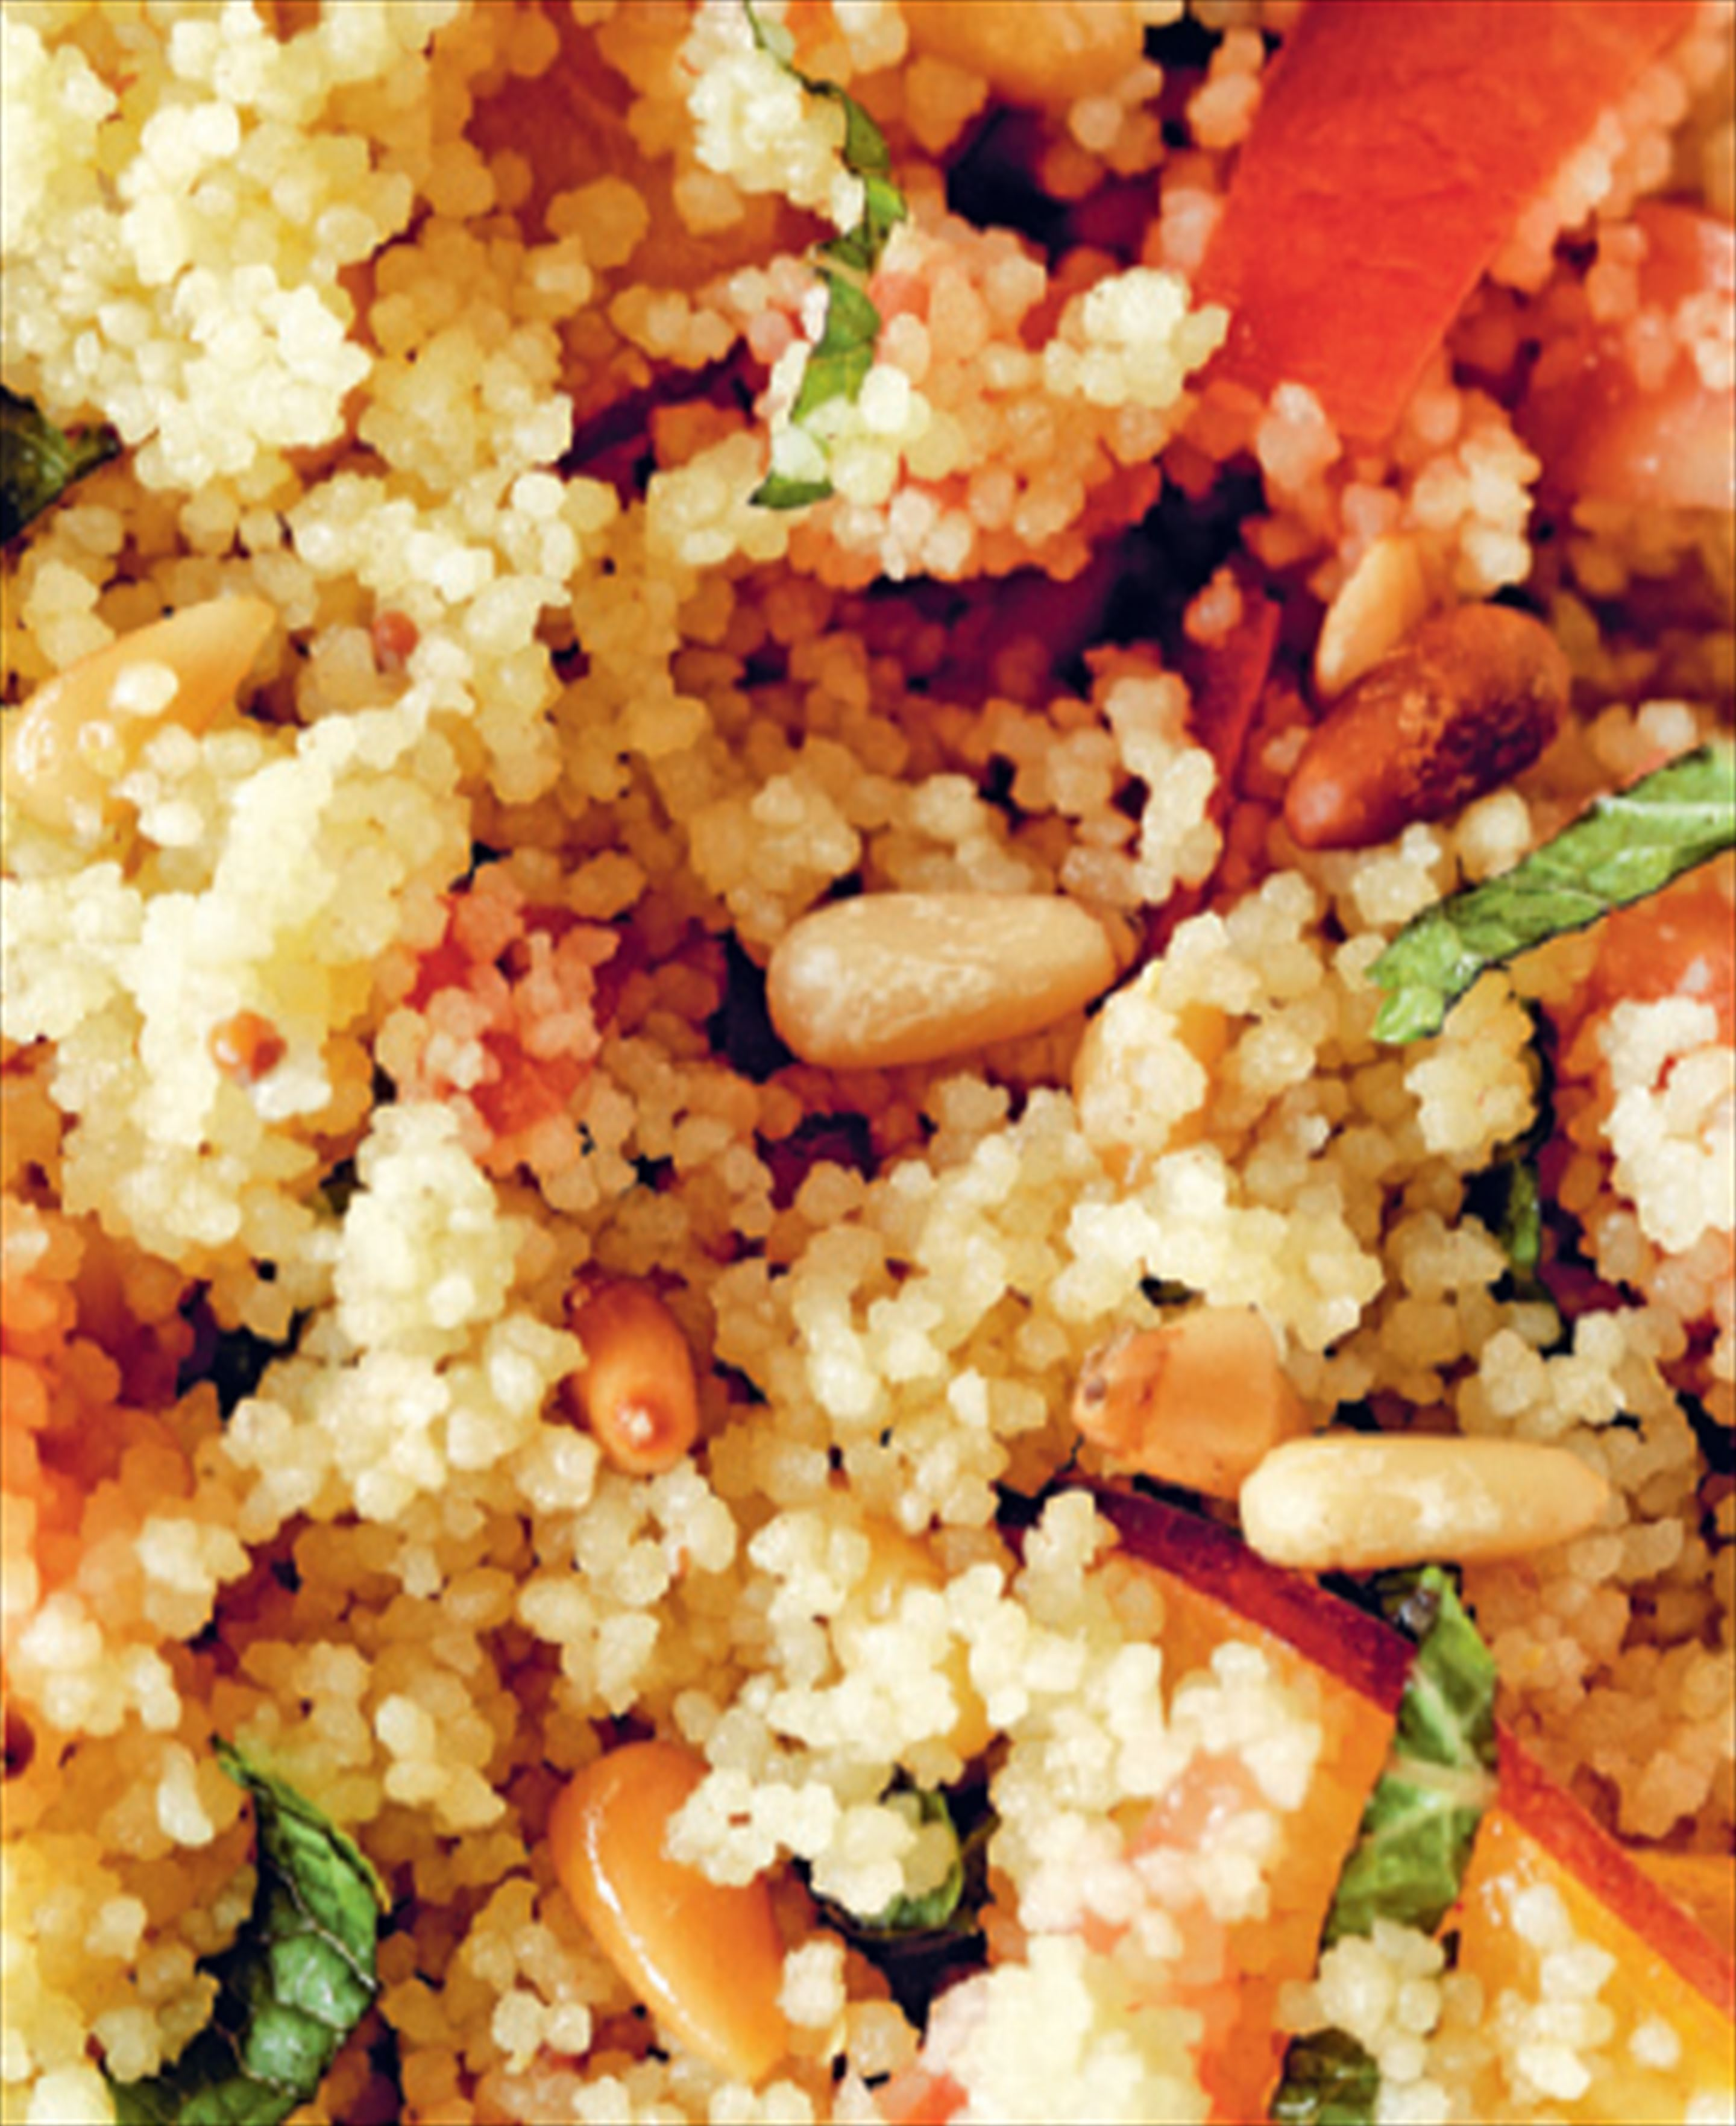 Fruity & summery couscous salad